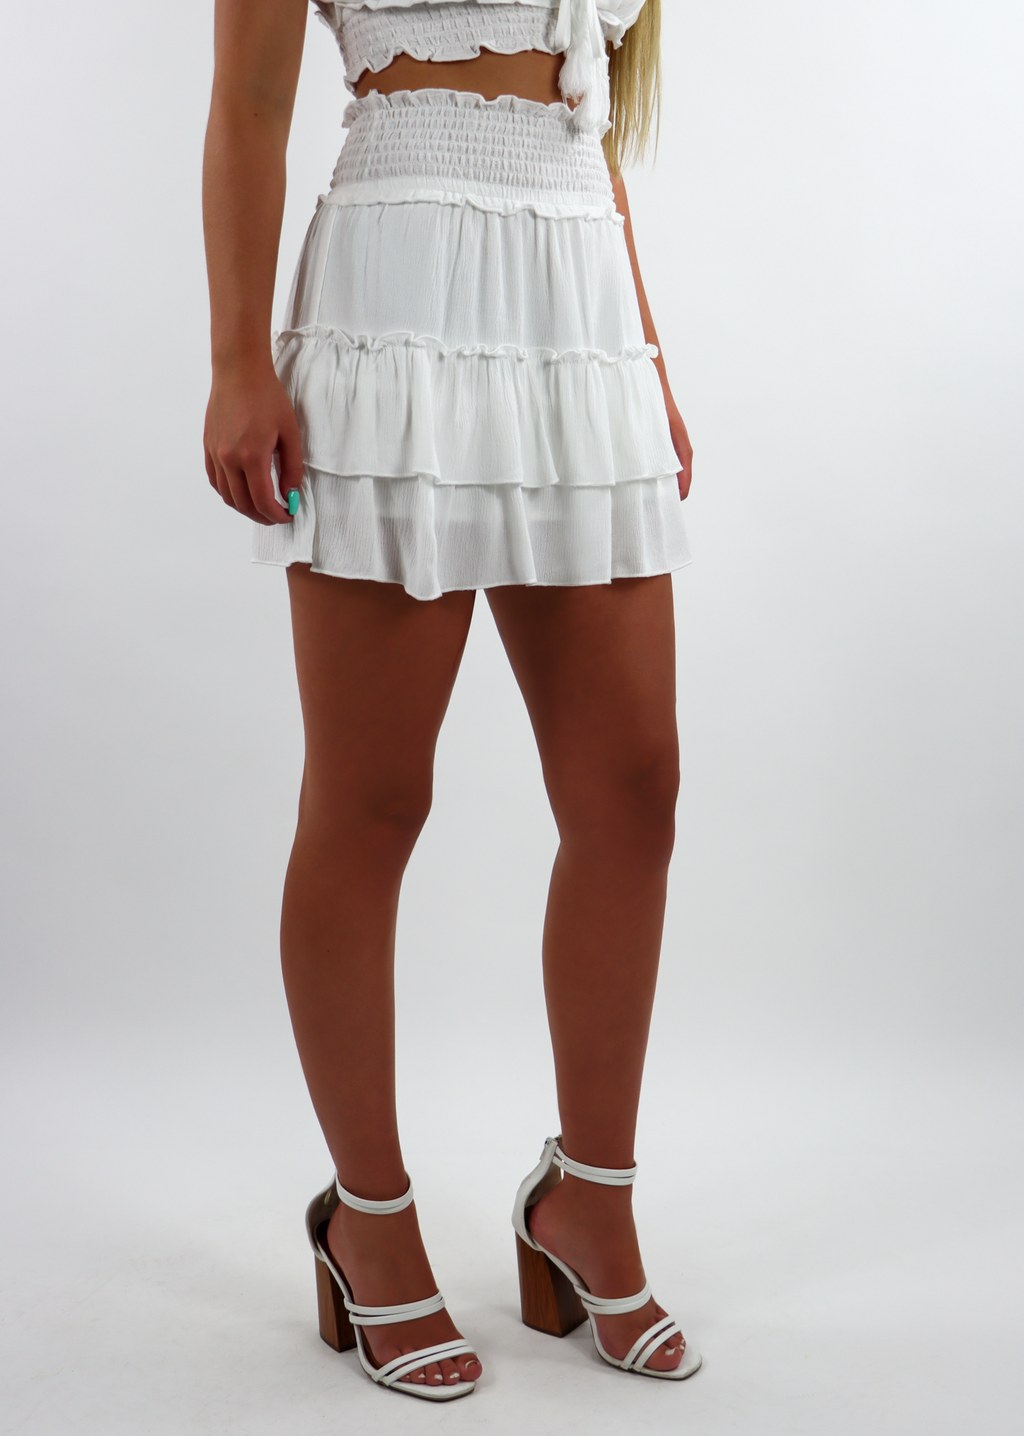 Start Me Up Skirt ★ White